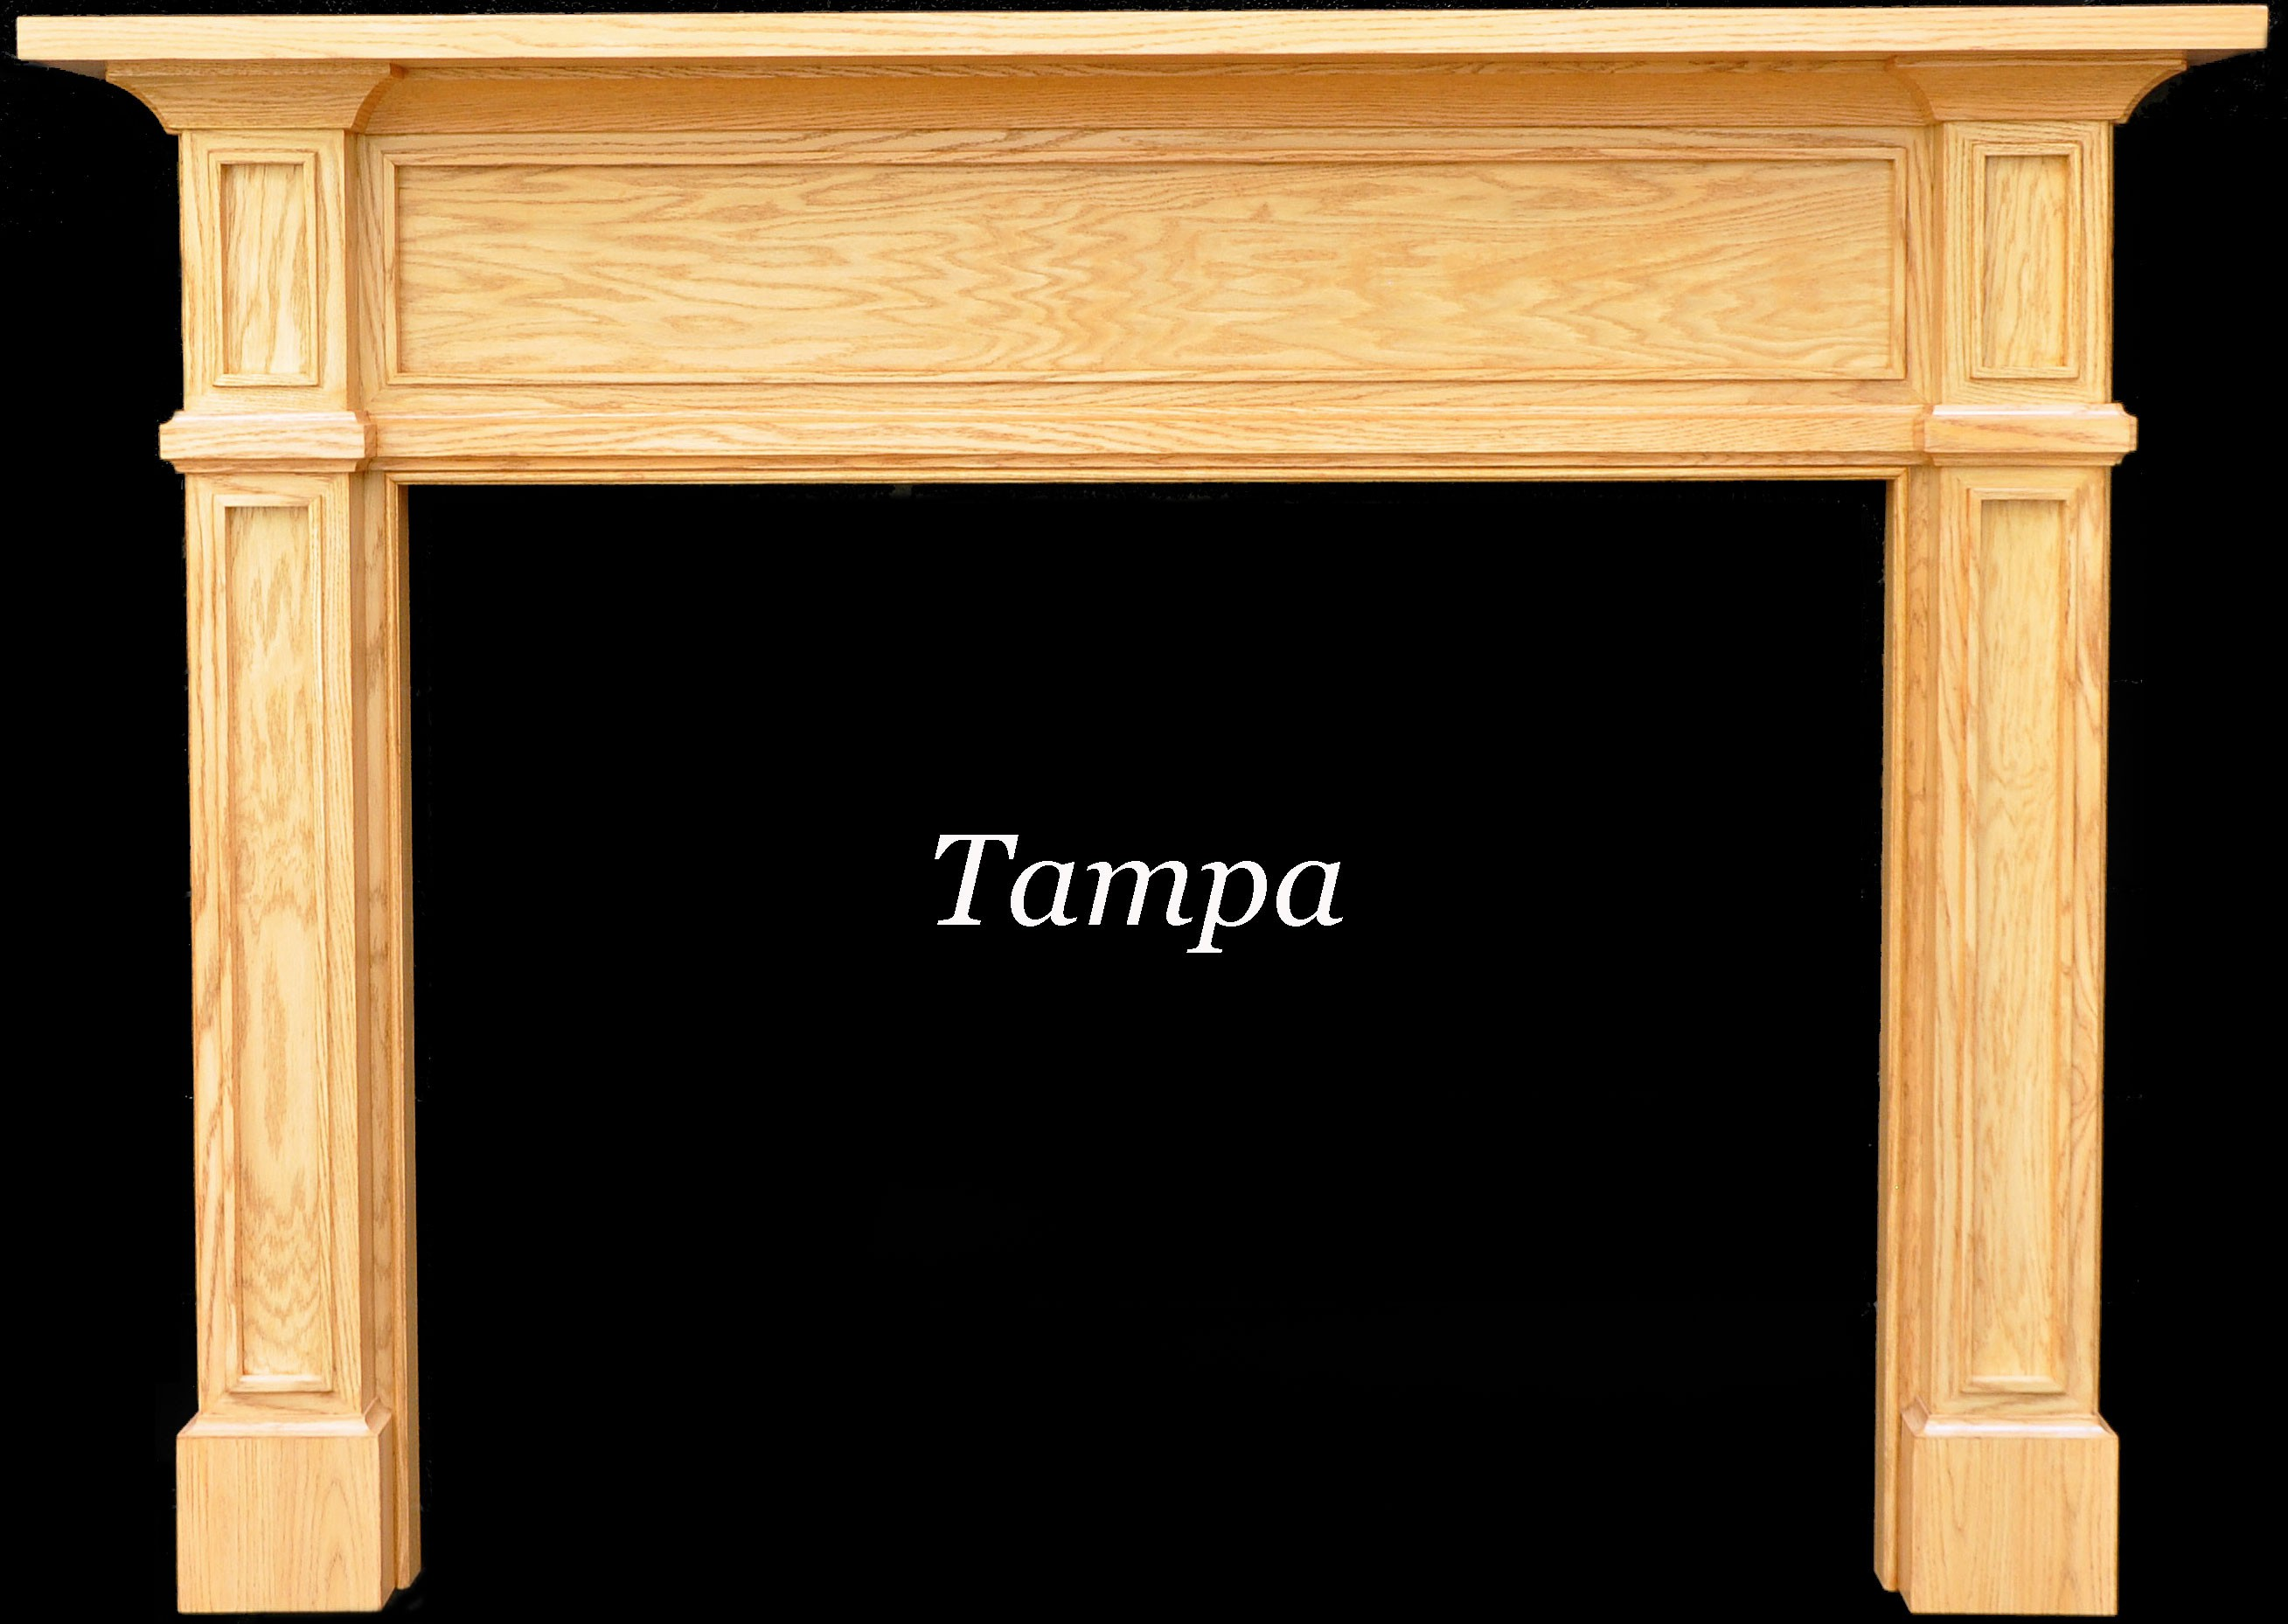 The Tampa Mantel